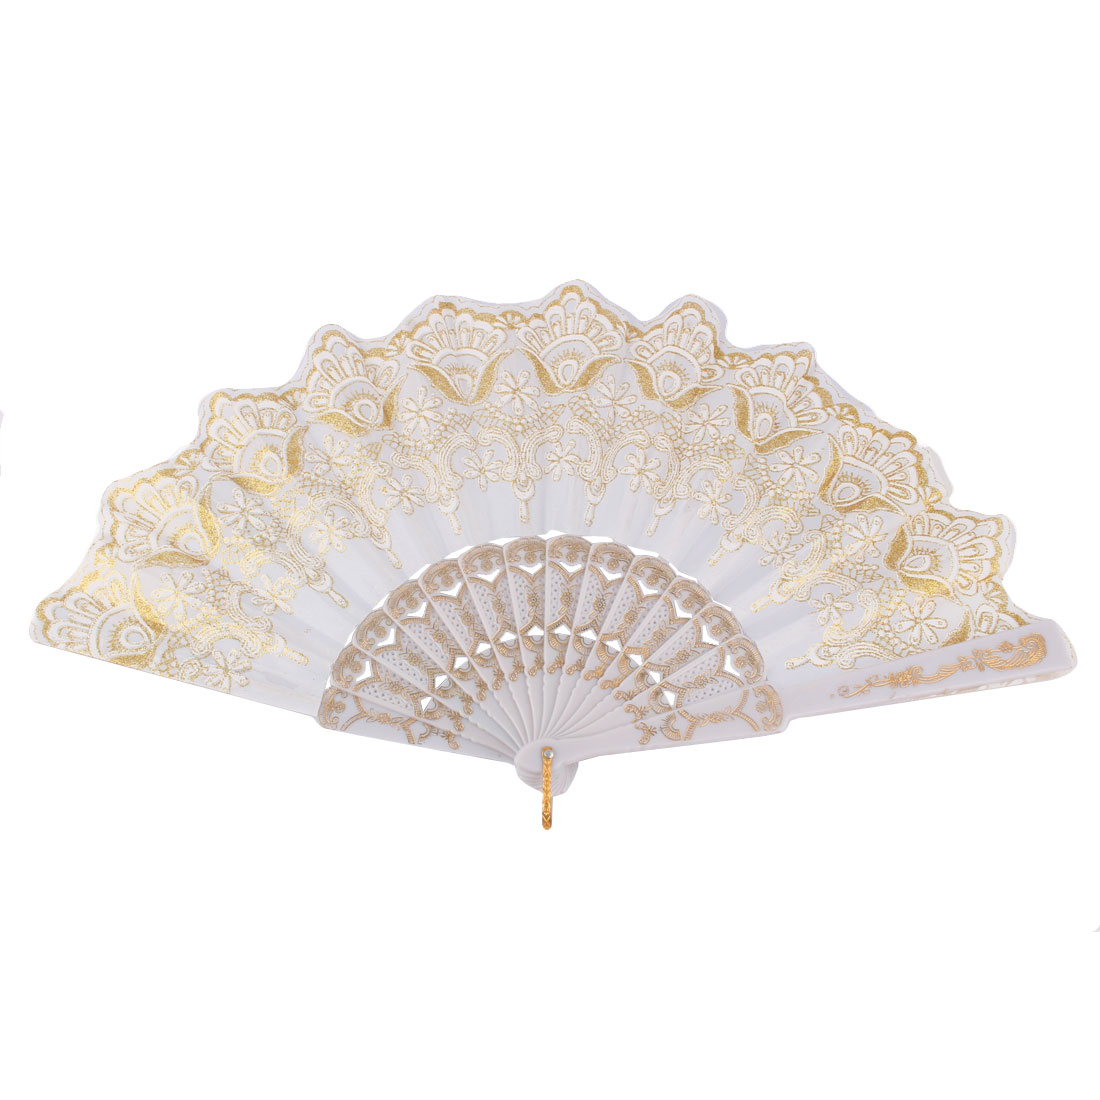 Dancing Party Chinese Style Flower Pattern Folding Hand Fan Gold Tone White